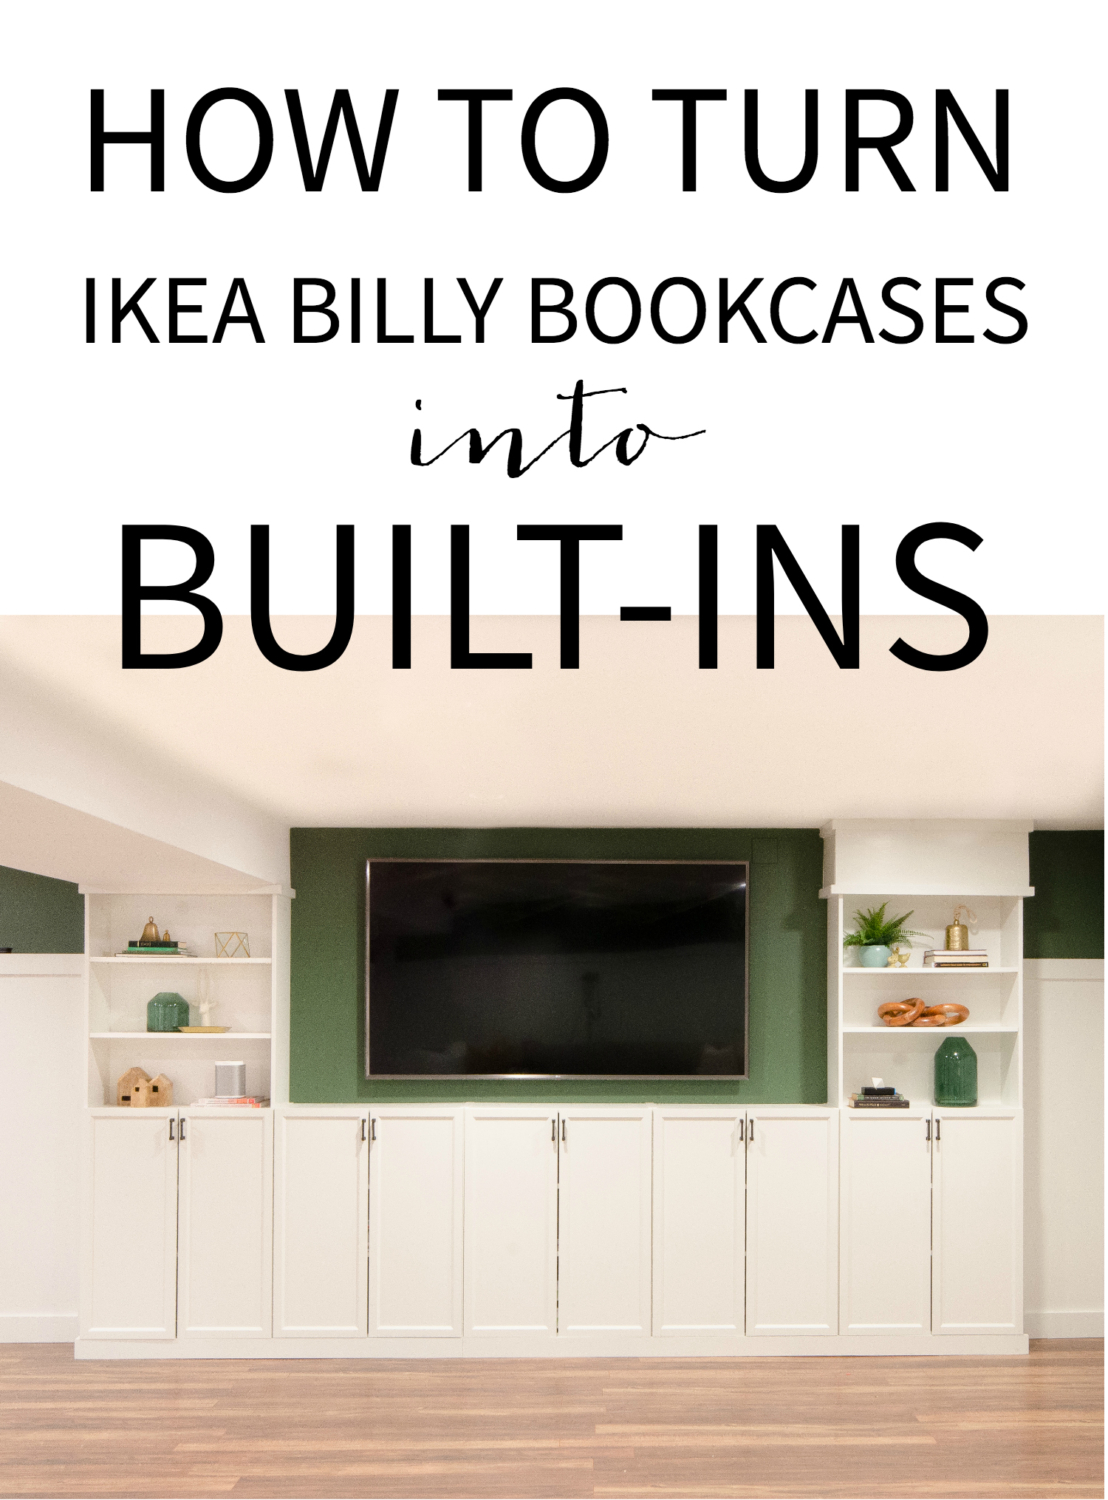 Free tutorial showing how to turn Ikea Billy bookcases into built ins. An easy and cost-effective way to get a high-end, custom look!